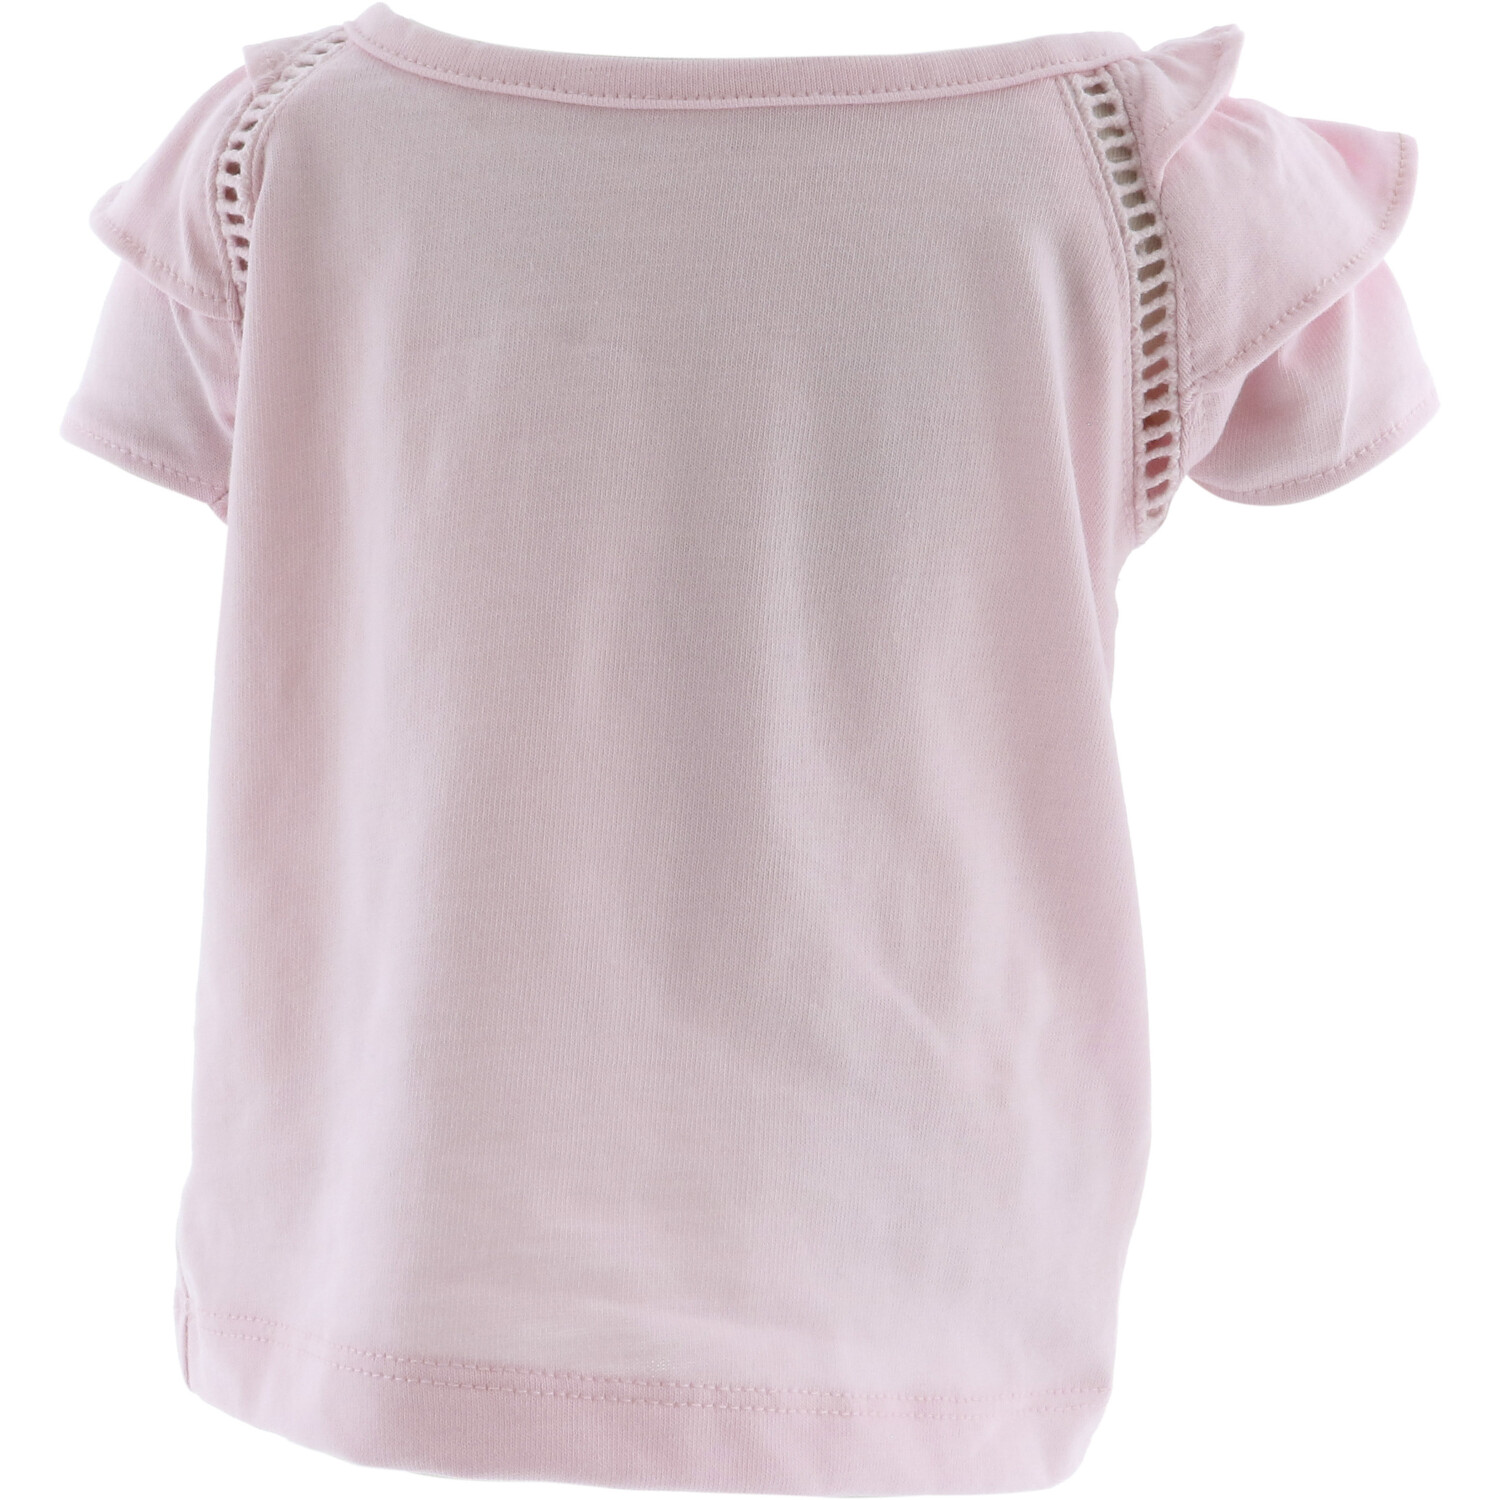 Janie And Jack Girl's Bubblegum Pink Ruffle Sleeve Top Blouse - 3-6 Months